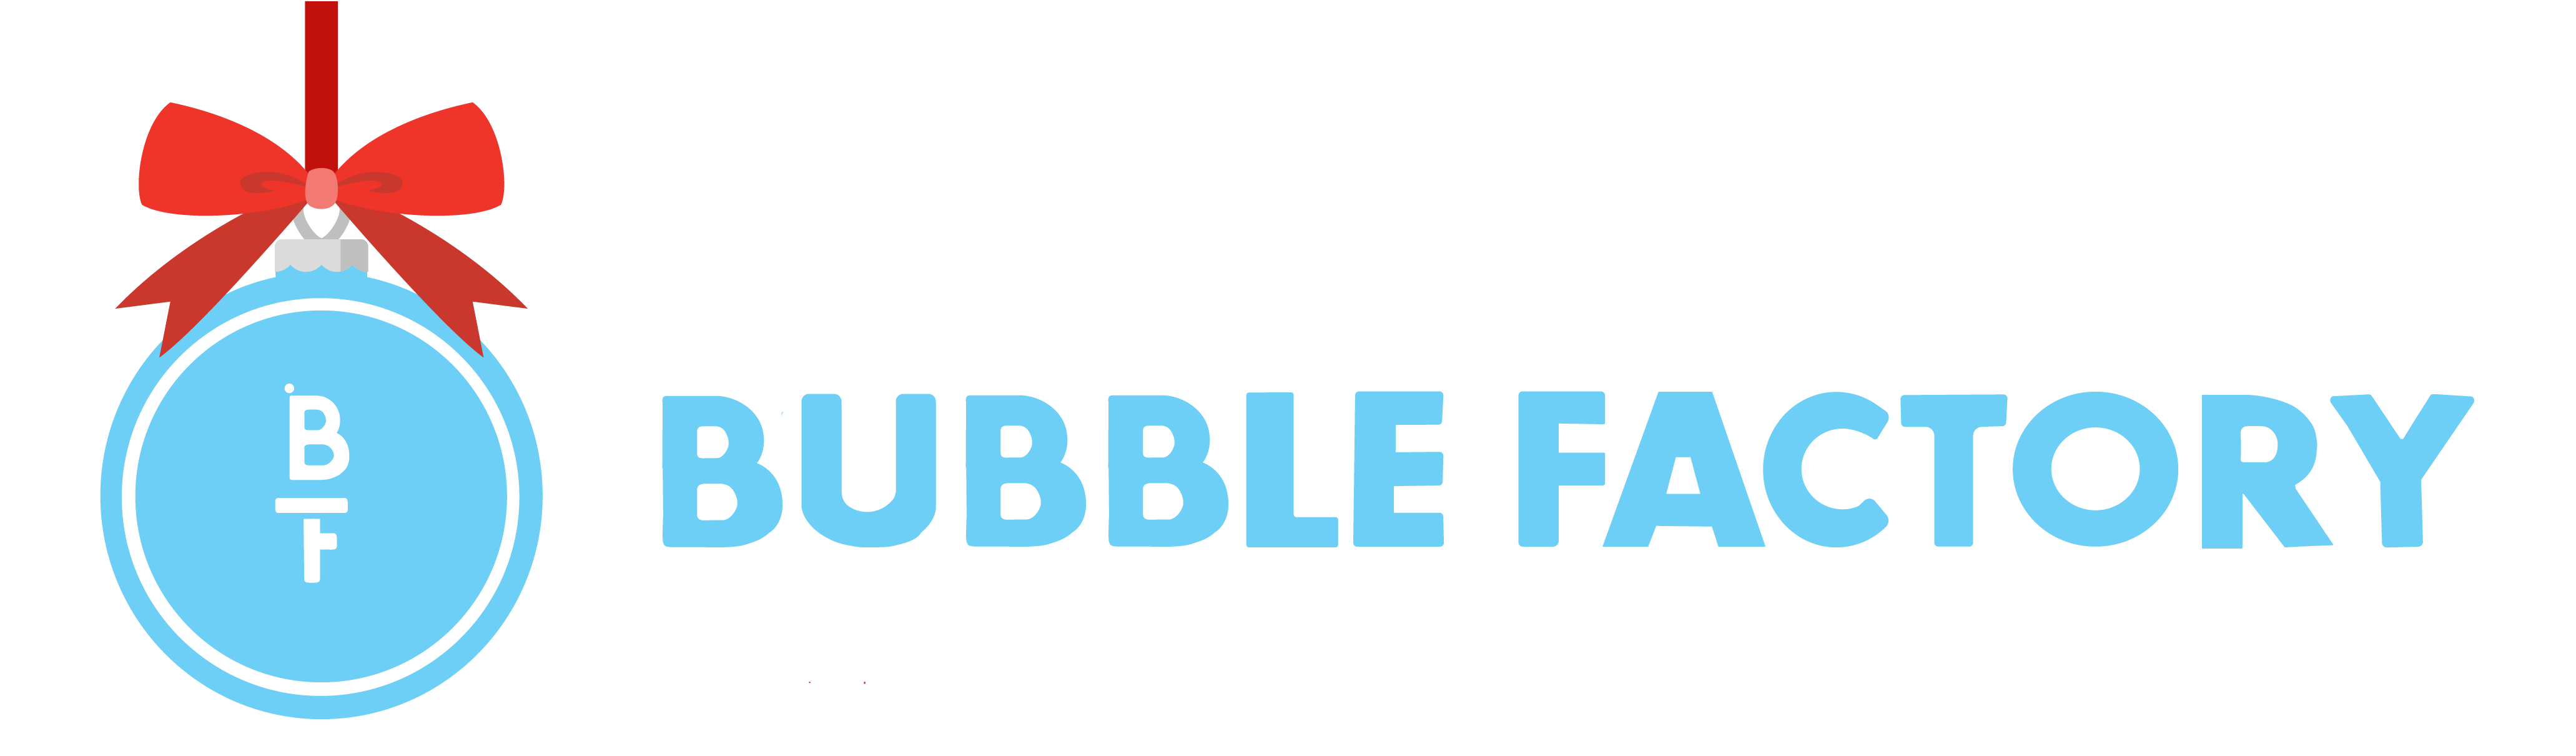 Bubble Factory